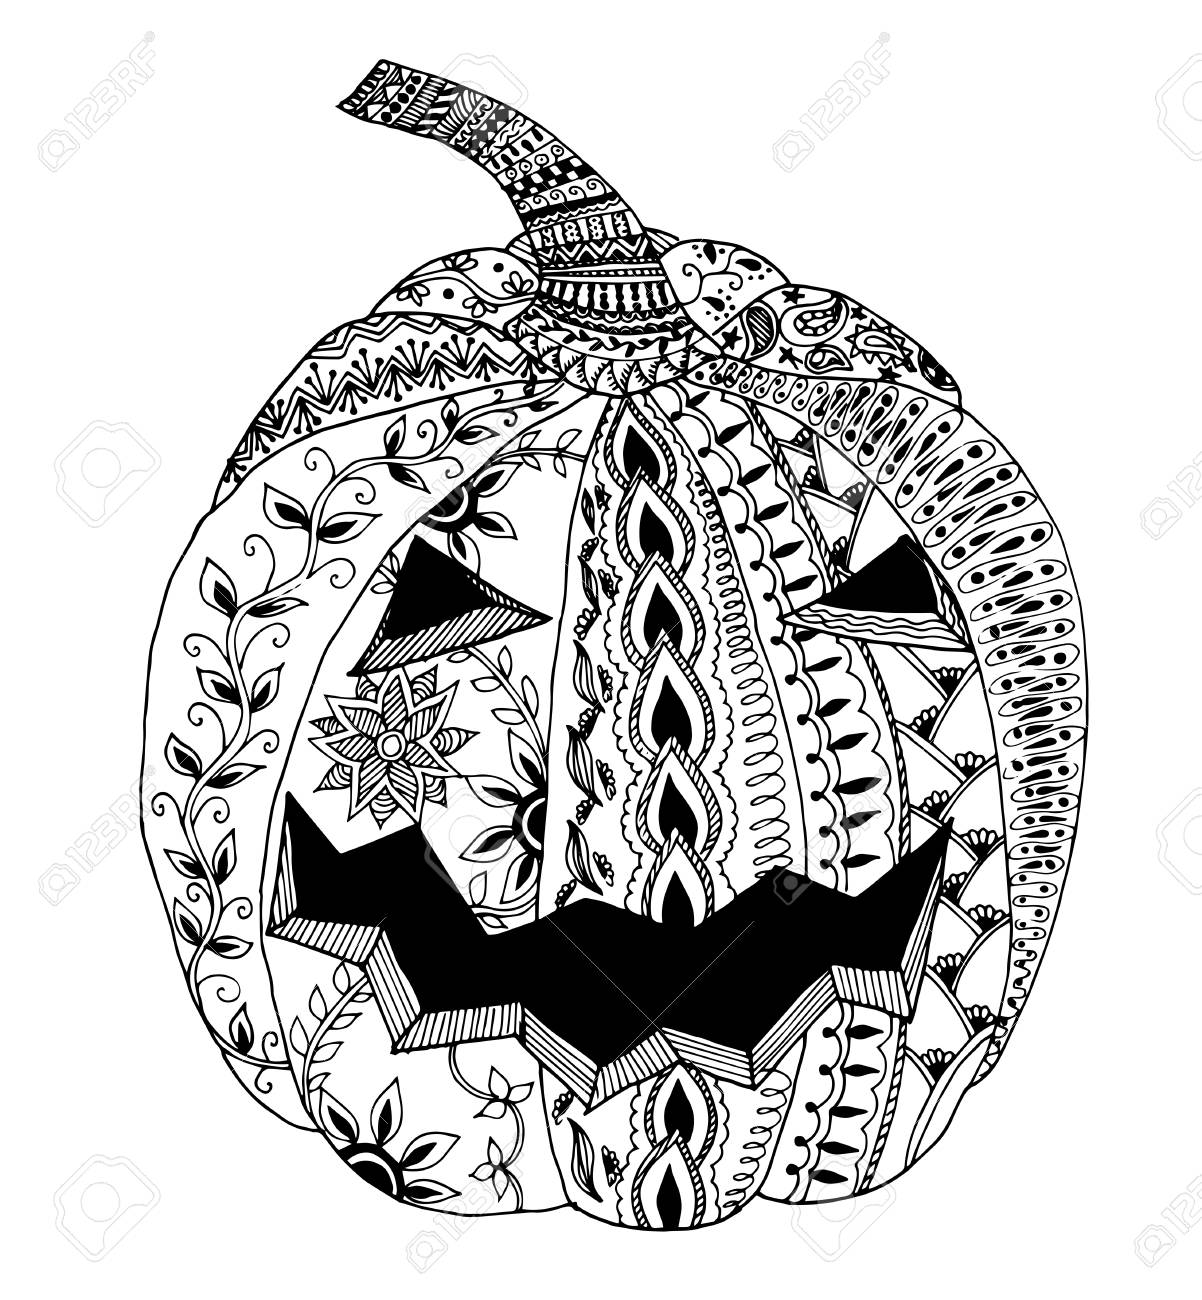 Umpkin For Halloween Hand Drawn Picture Zentangle Vector Royalty Free Cliparts Vectors And Stock Illustration Image 66703399